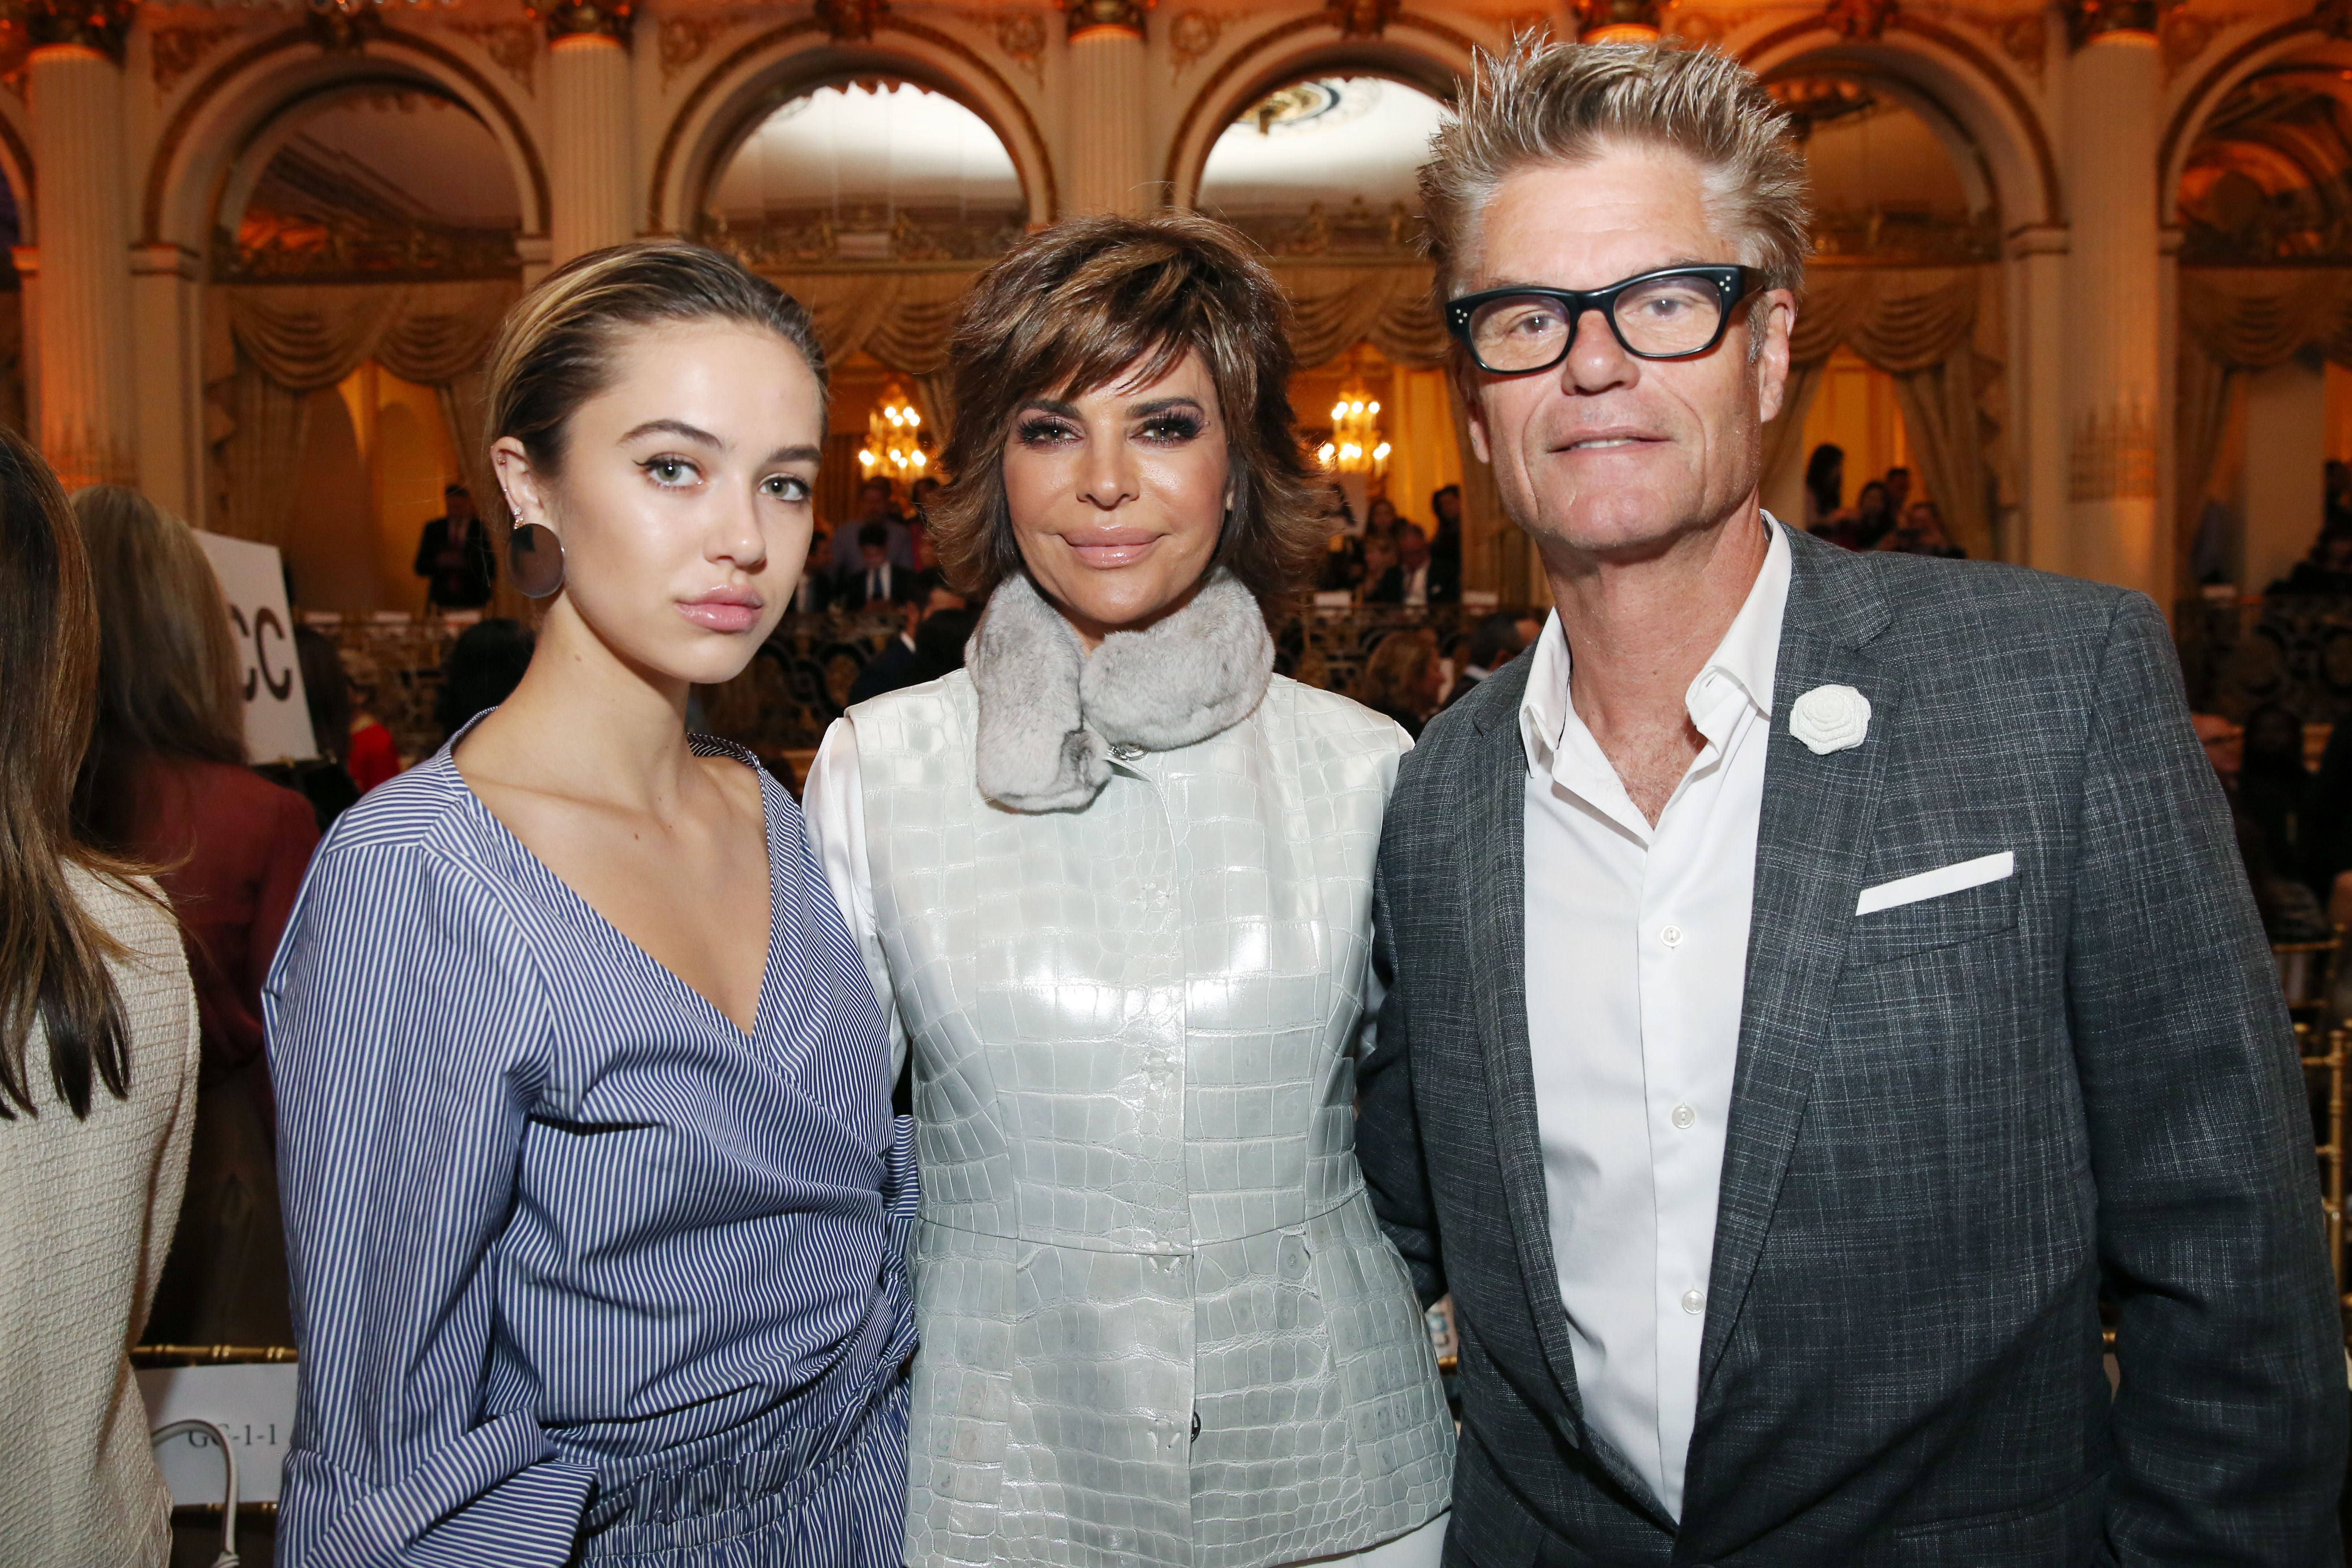 Delilah Hamlin, Lisa Rinna, and Harry Hamlin attend the Dennis Basso show for Spring/Summer 2018 at New York Fashion Week on Sept. 11, 2017.